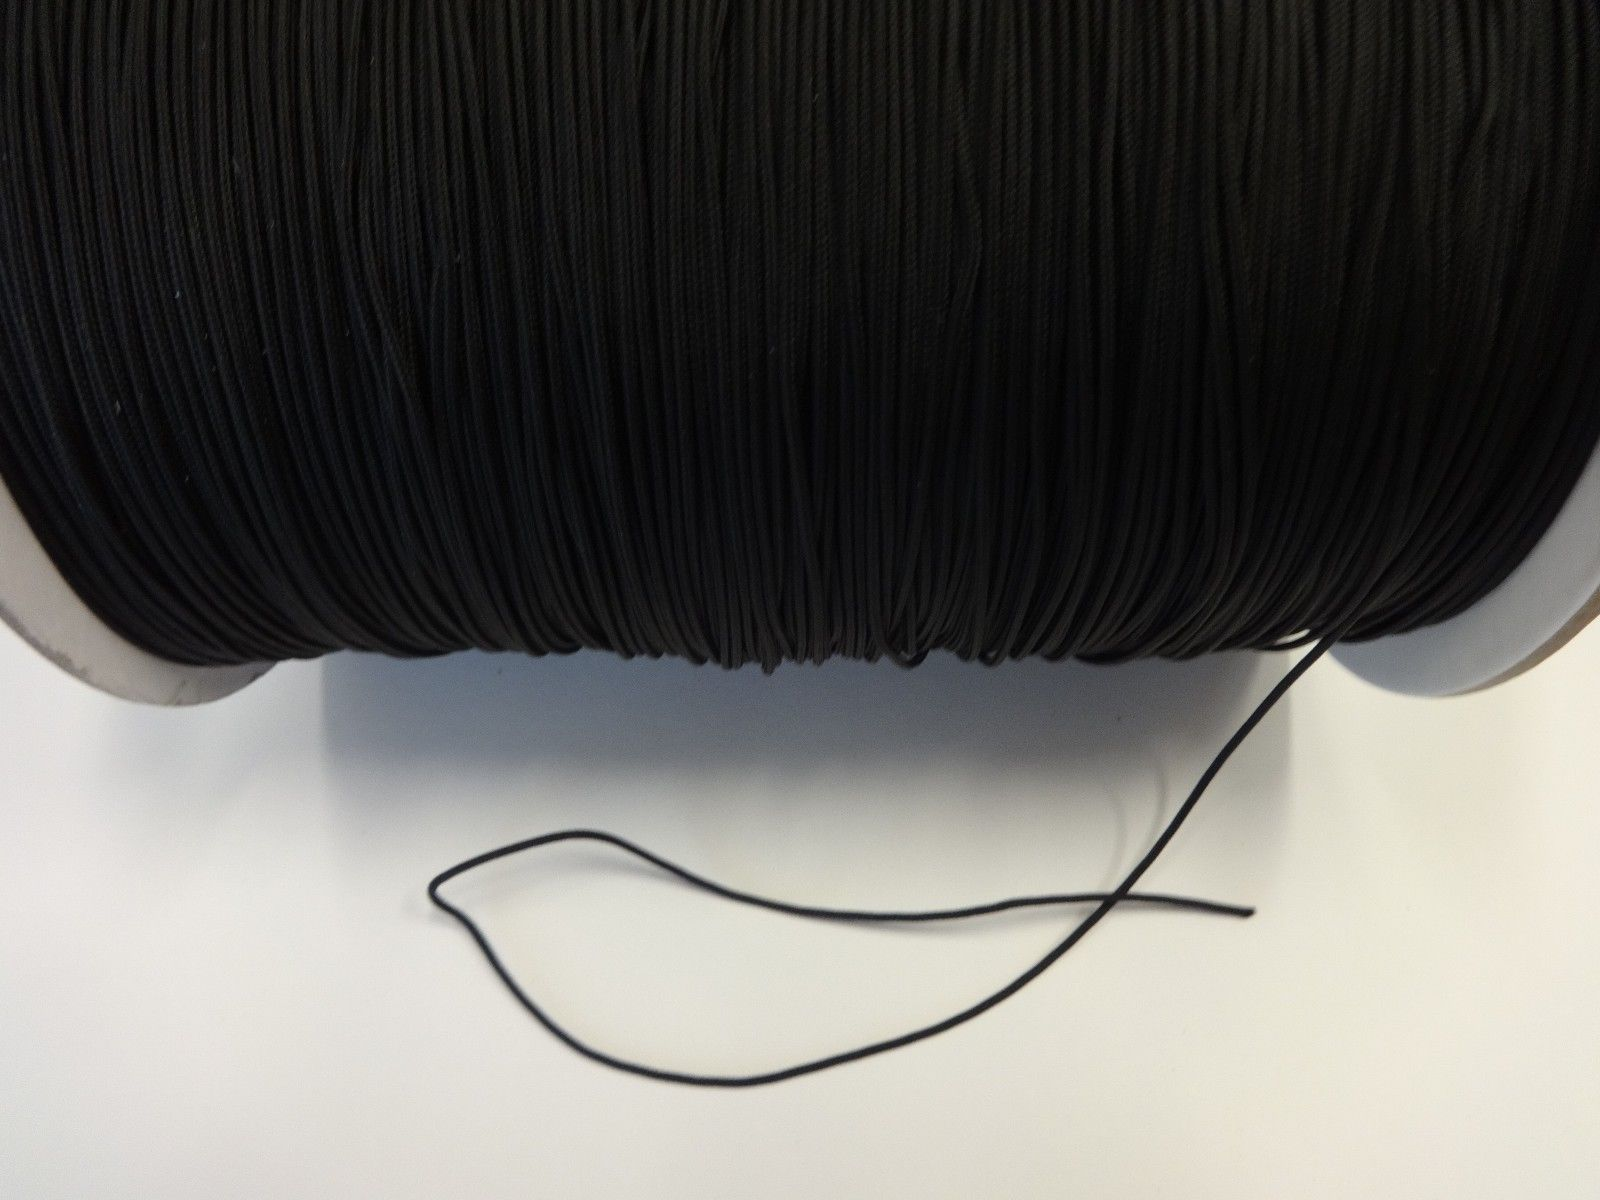 25 FEET:1.8mm BLACK LIFT CORD for Blinds, Roman Shades and More